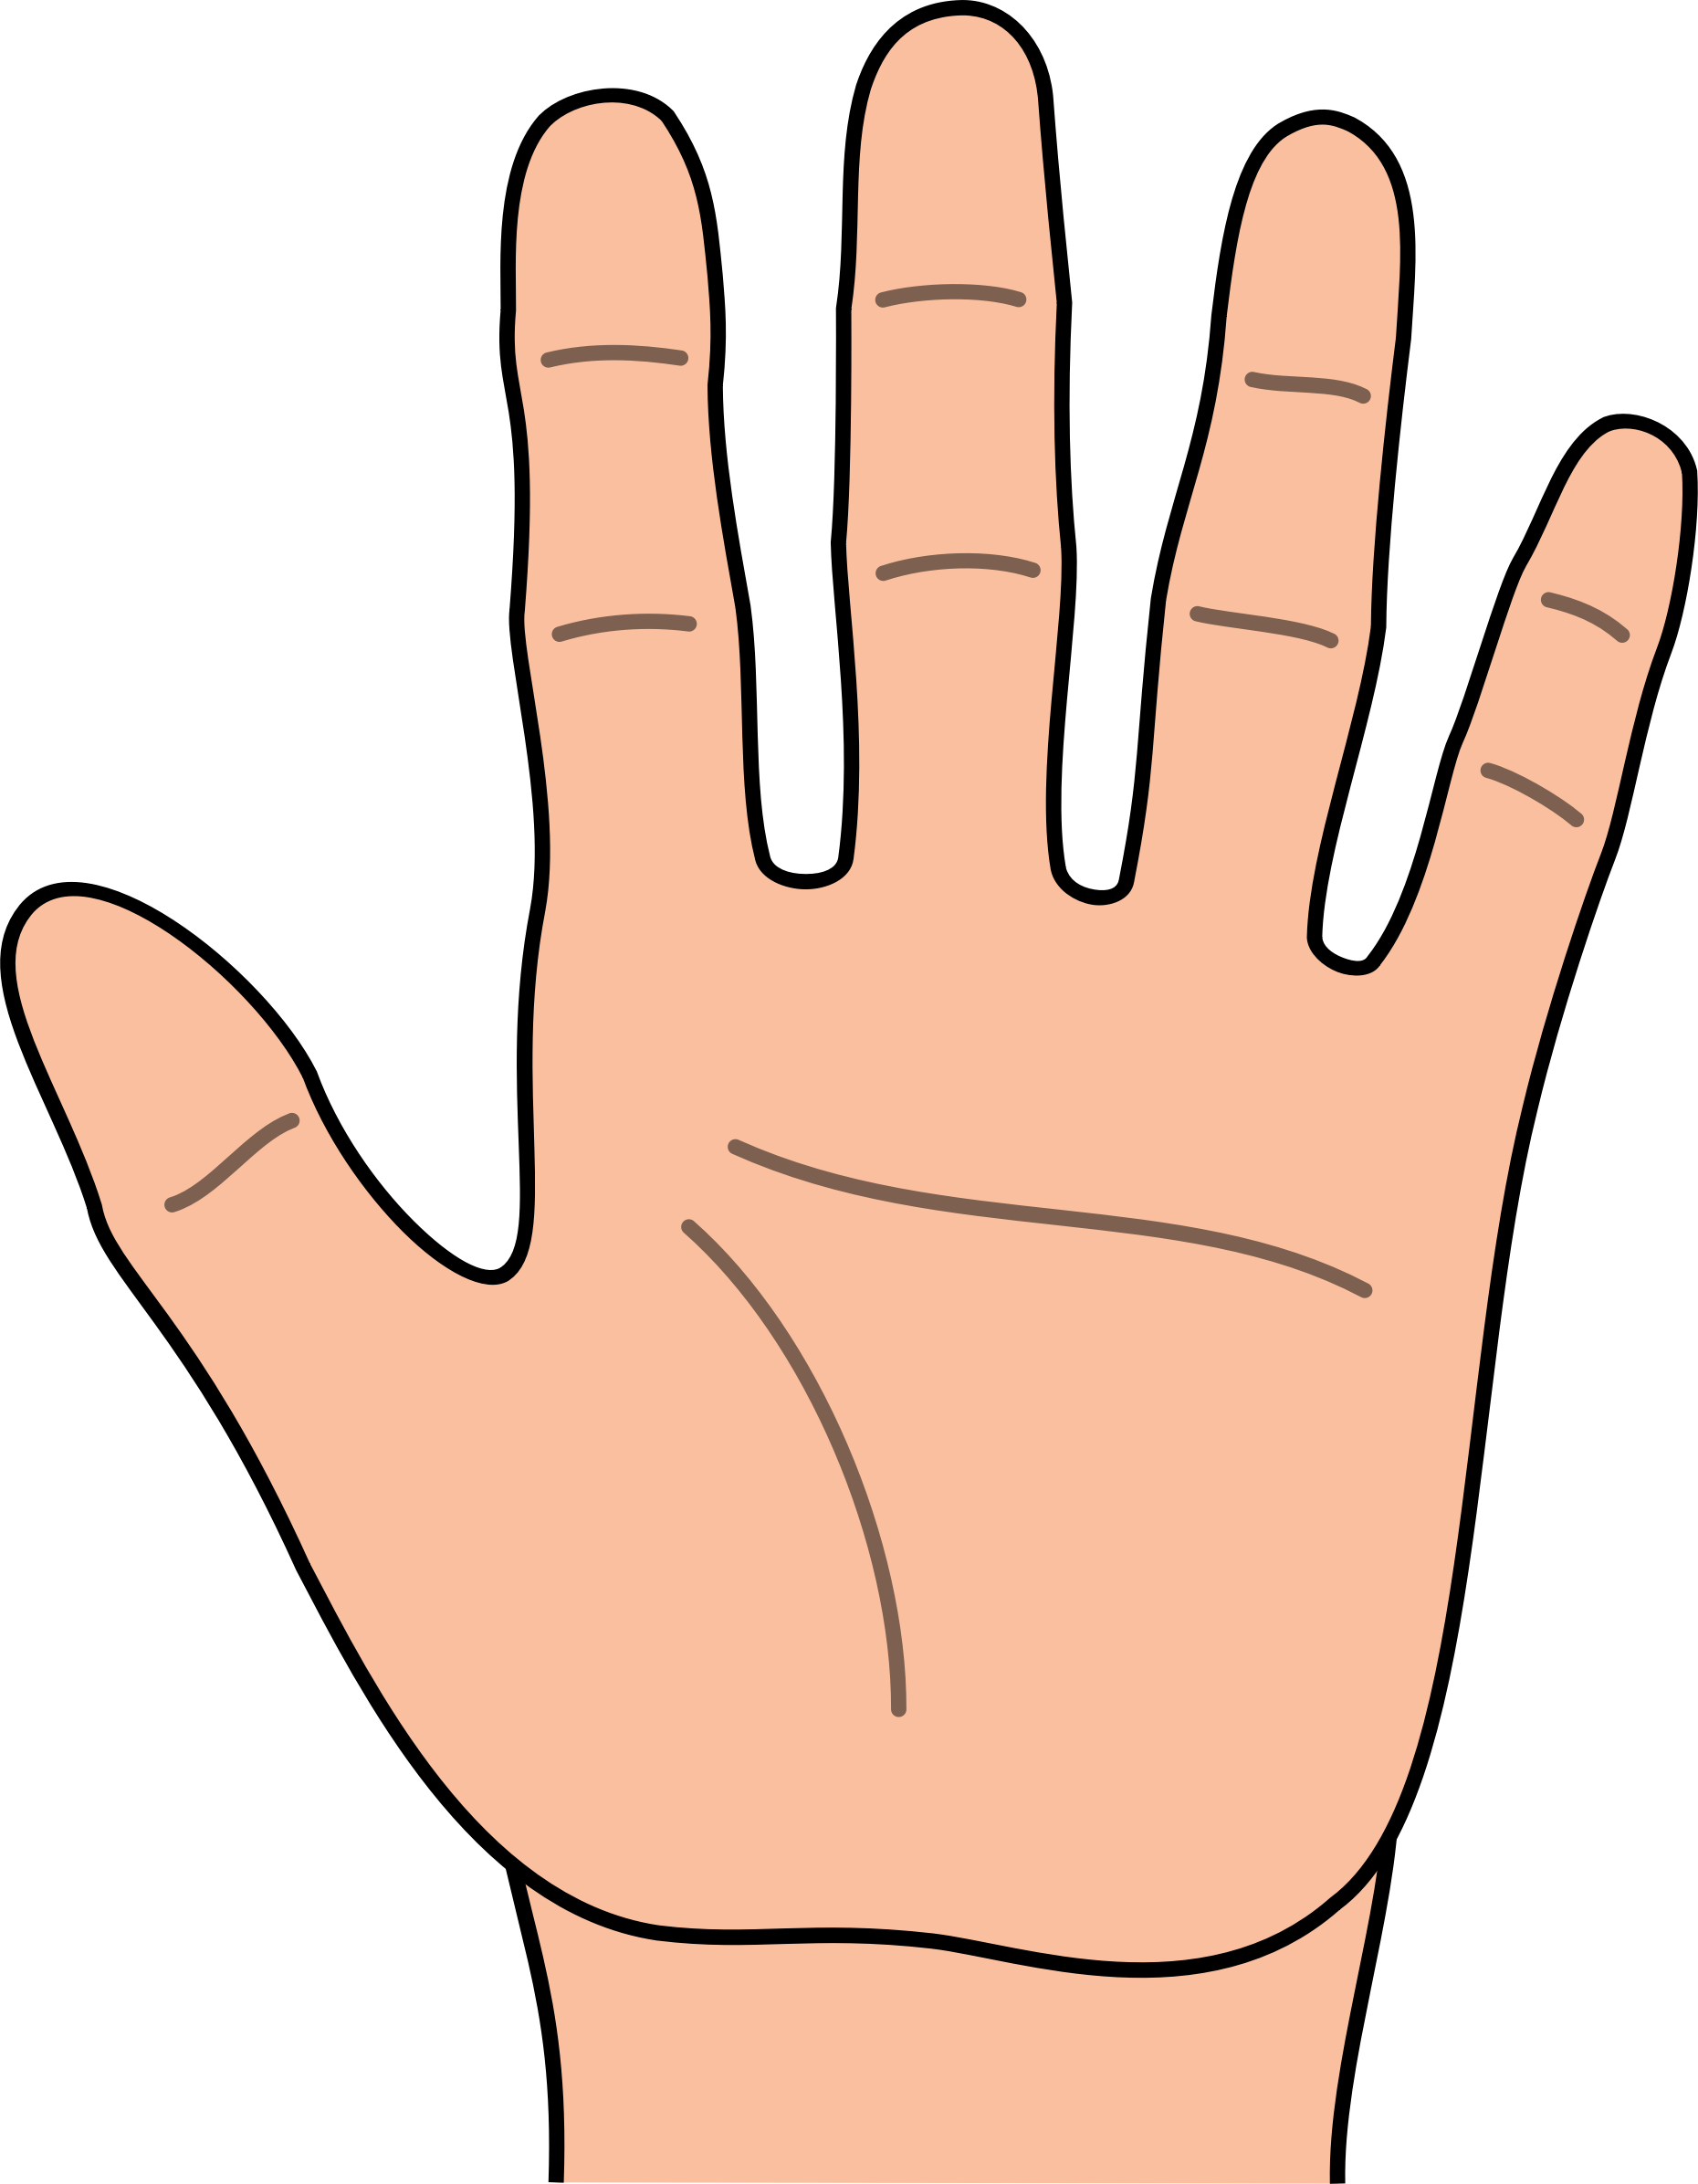 Hand clipart #7, Download drawings